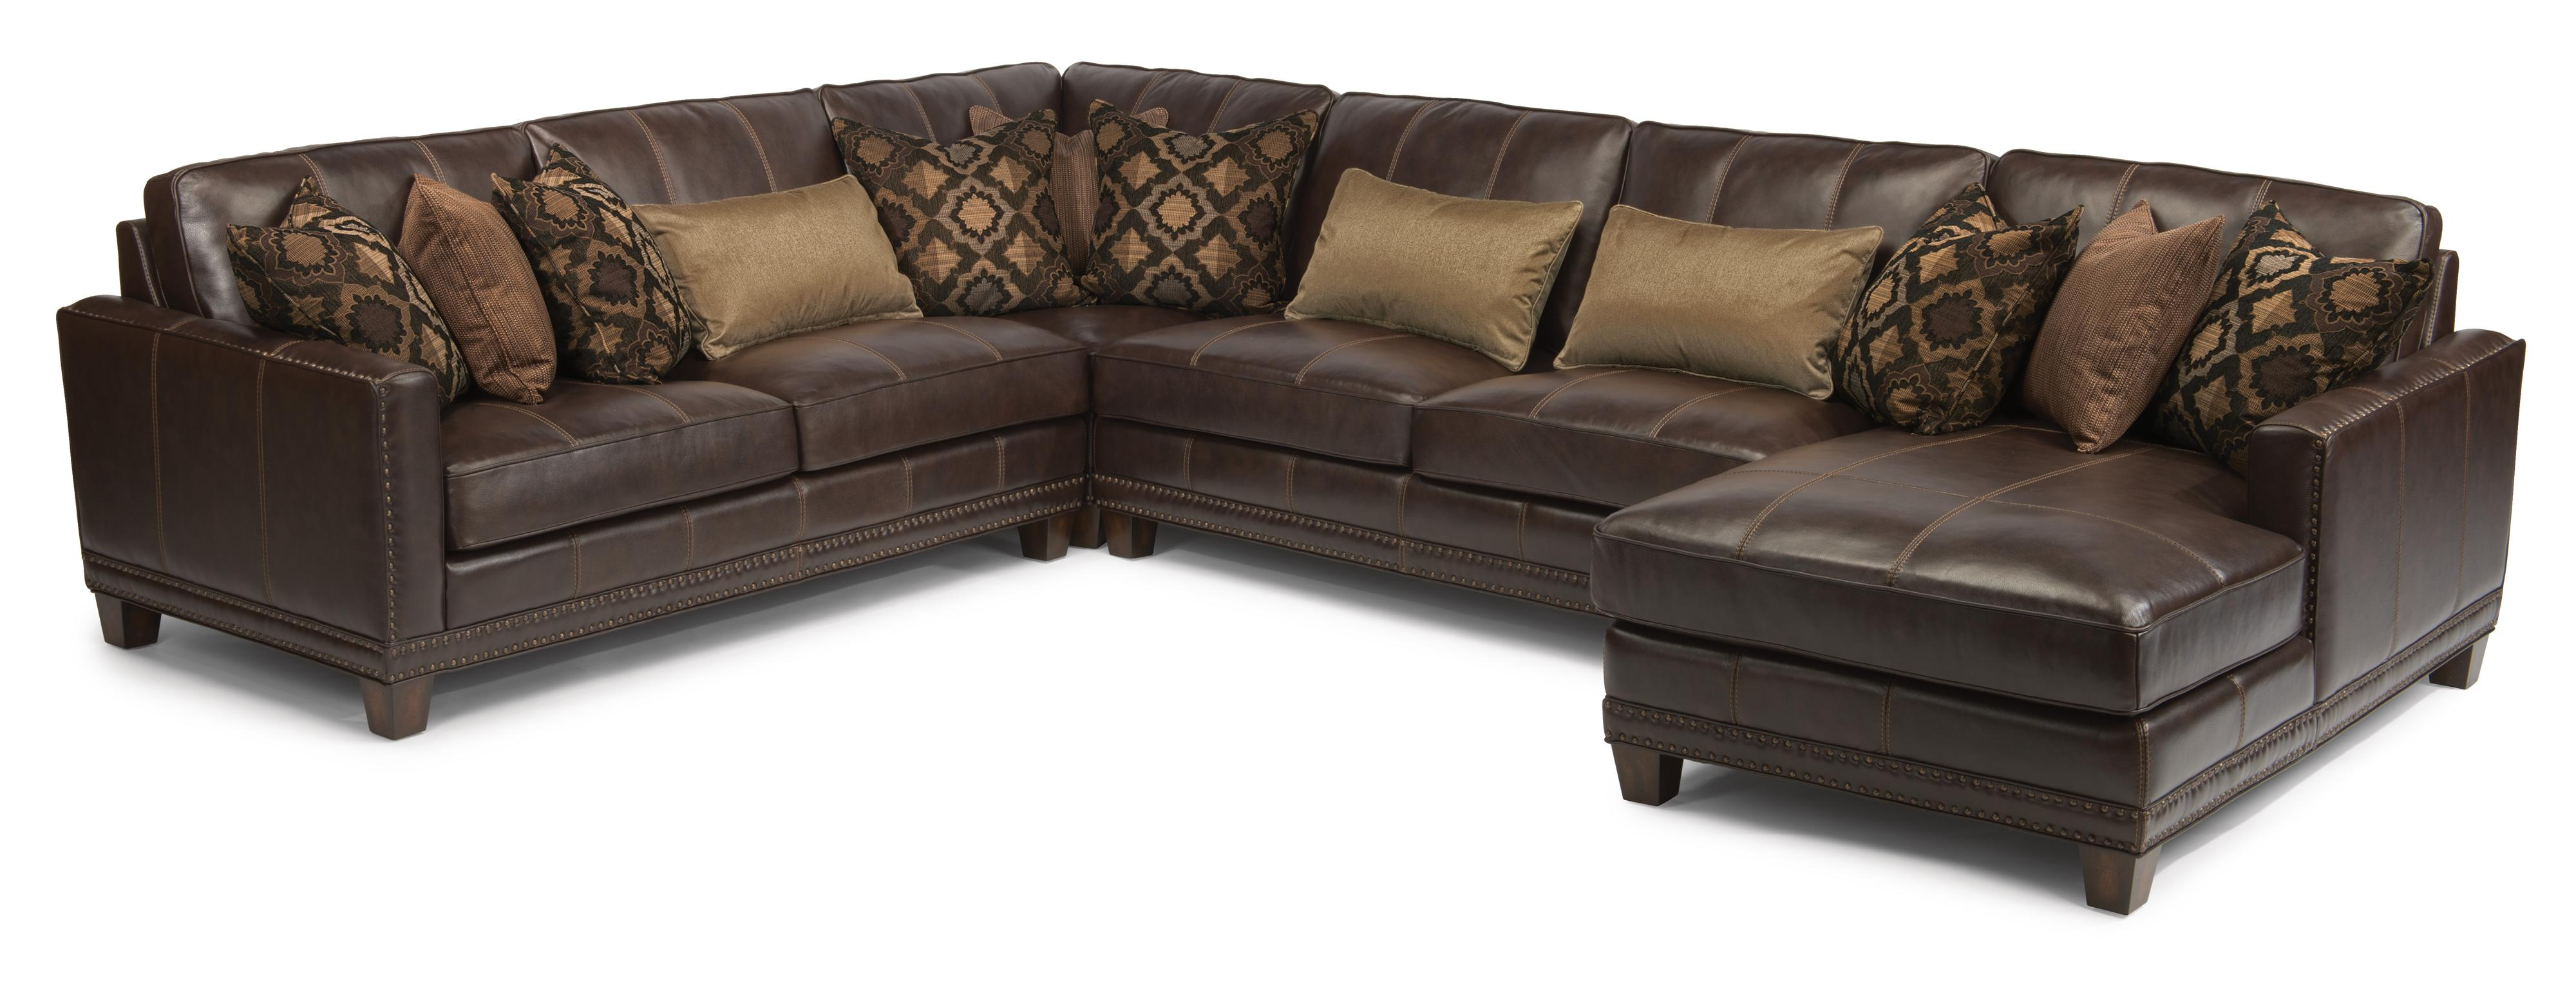 Latitudes - Port Royal 4 Pc Sectional Sofa by Flexsteel at Walker's Furniture